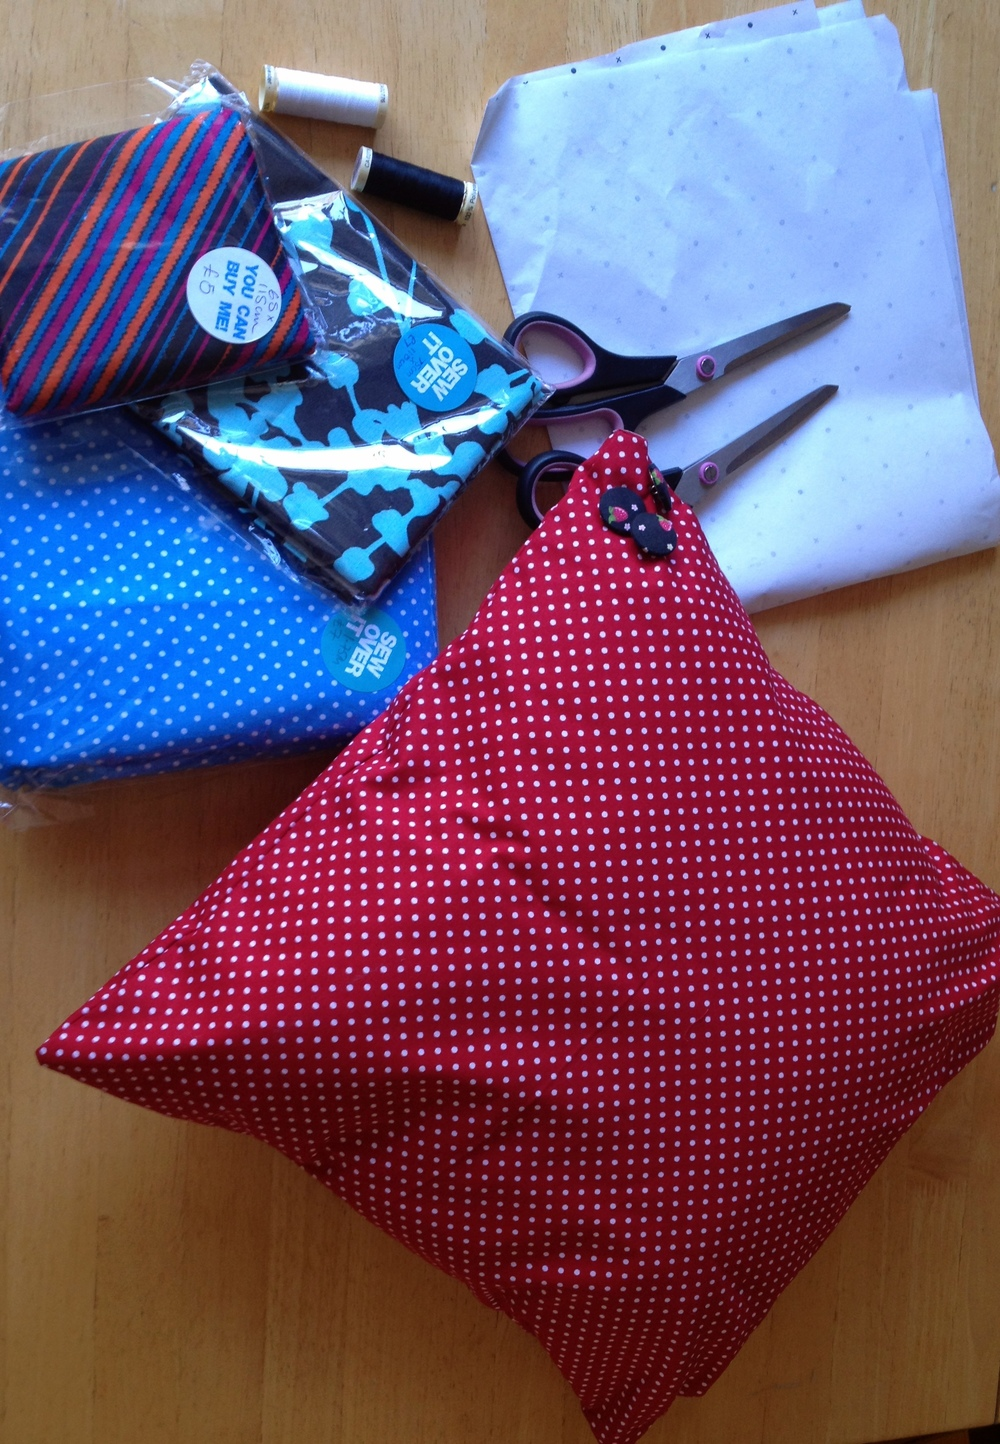 Complete cushion cover and supplies to make more!